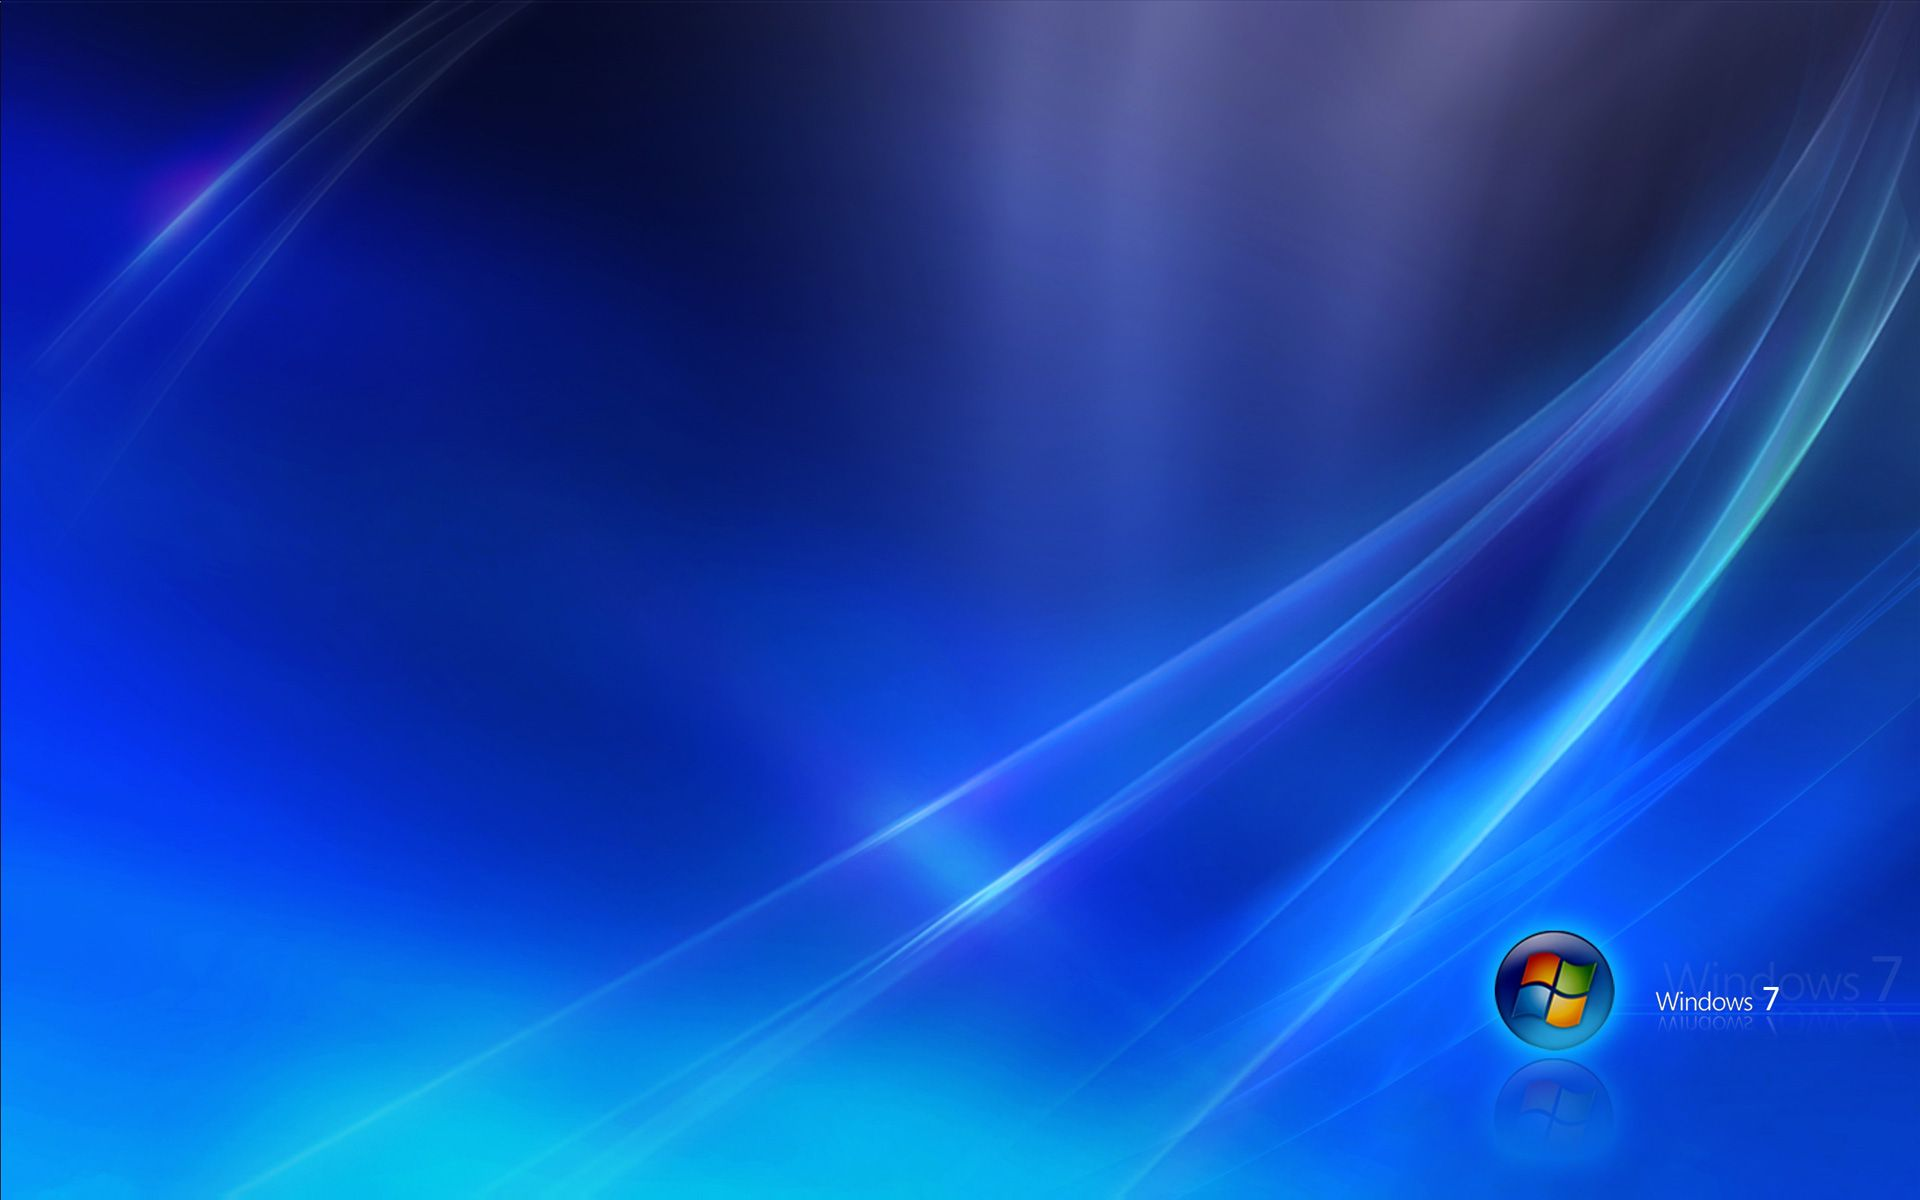 microsoft windows backgrounds themes free wallpaper download 2560